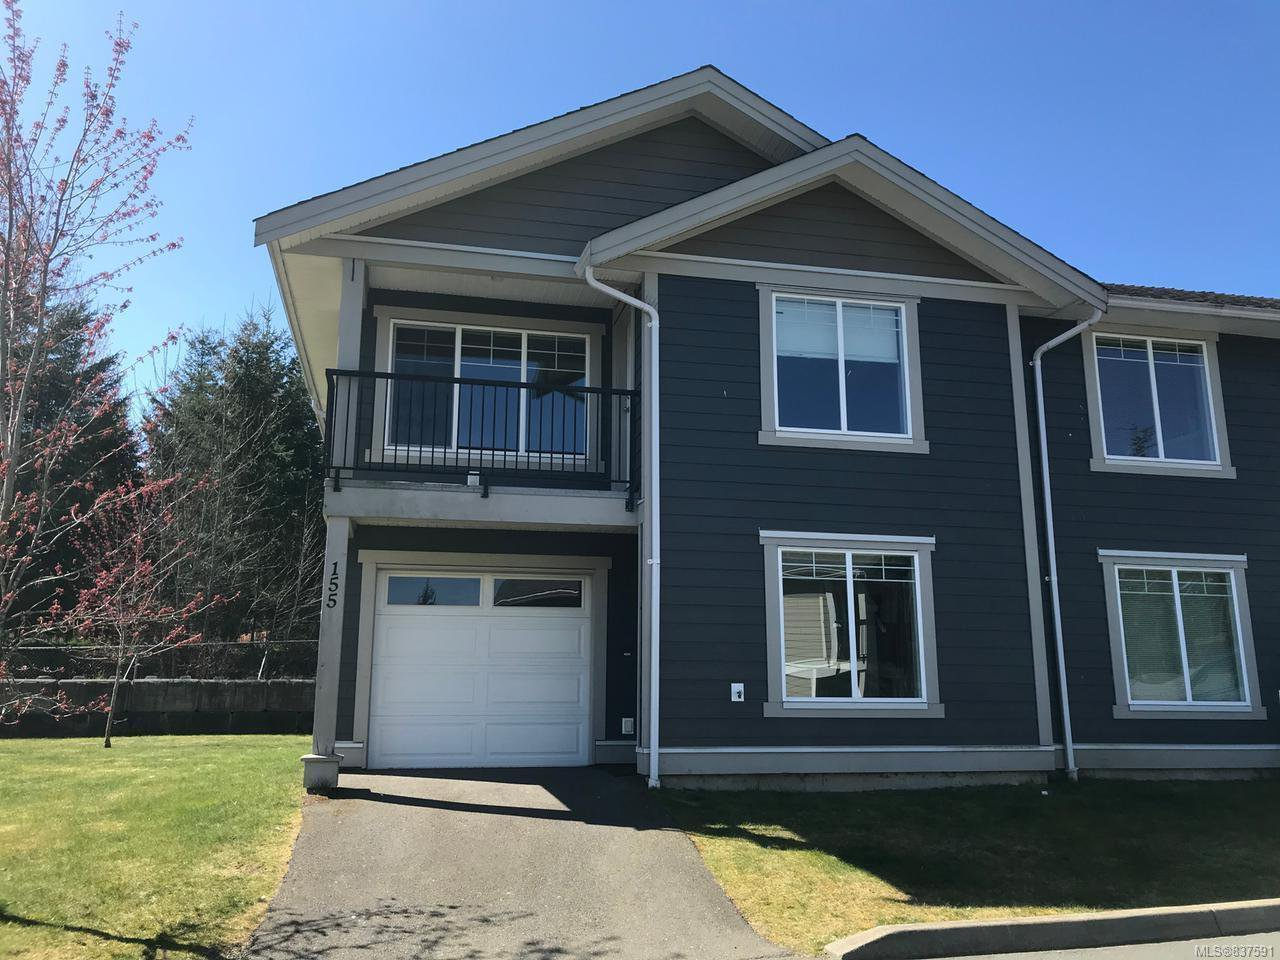 Main Photo: 155 701 Hilchey Rd in CAMPBELL RIVER: CR Willow Point Row/Townhouse for sale (Campbell River)  : MLS®# 837591